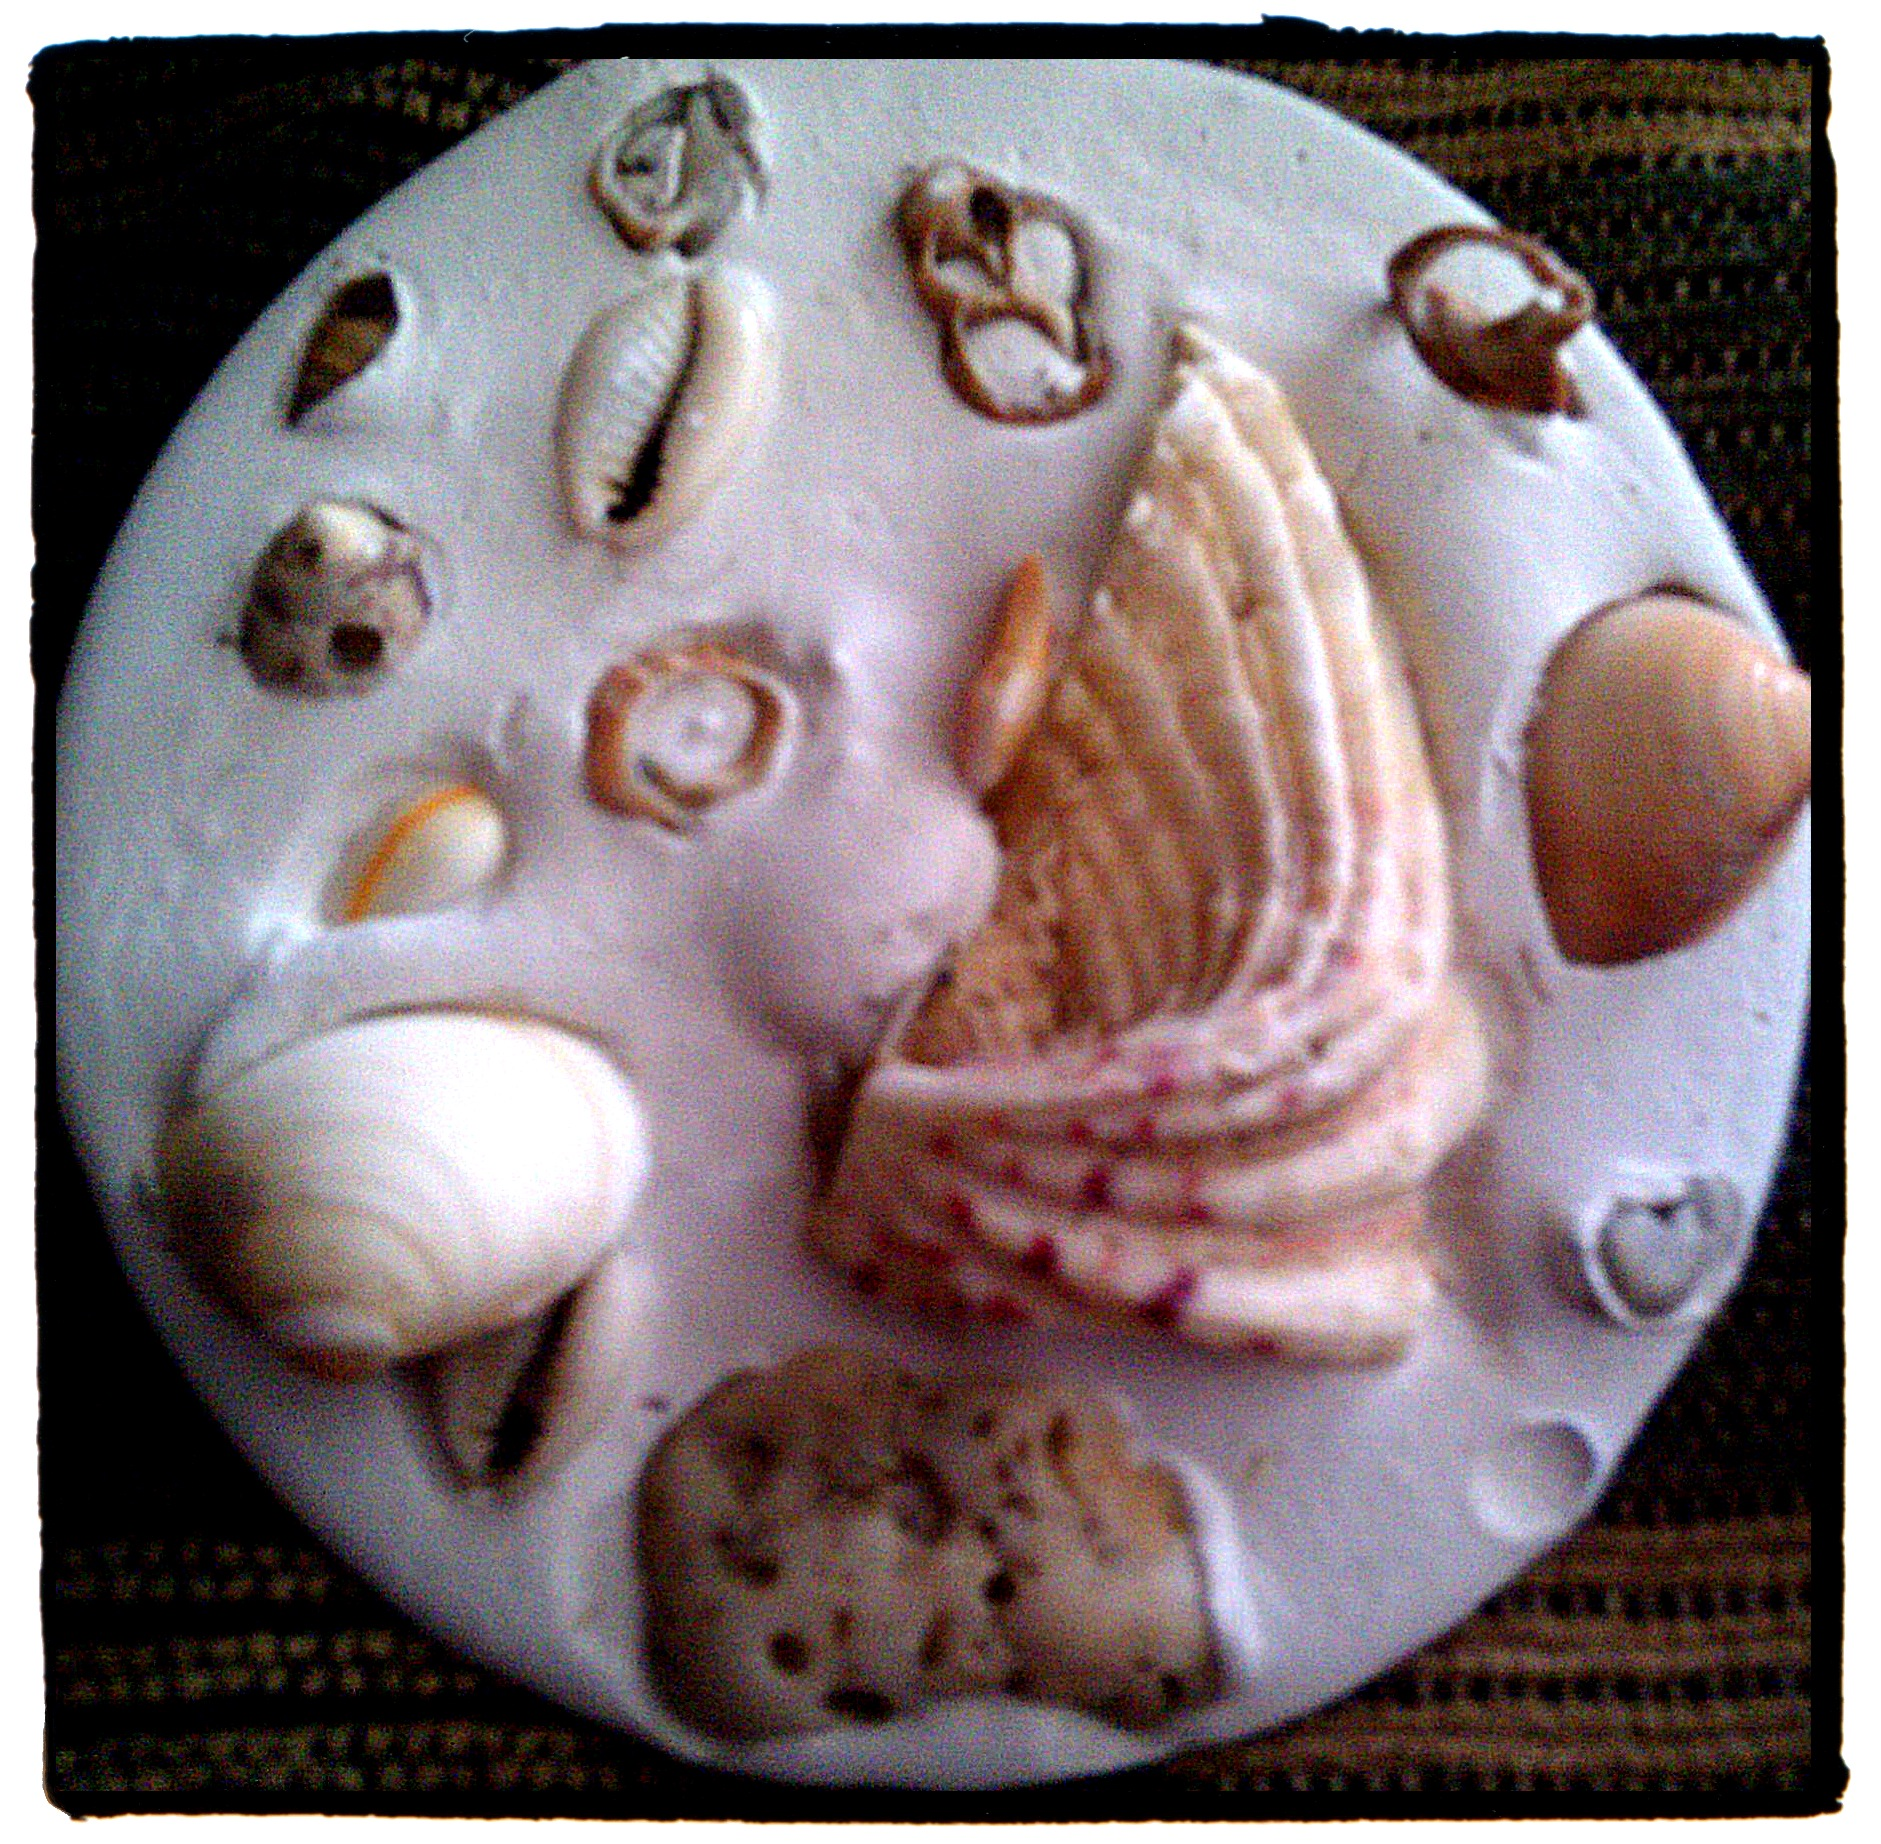 Snubnose embedded some shells on a plate made of plaster of paris